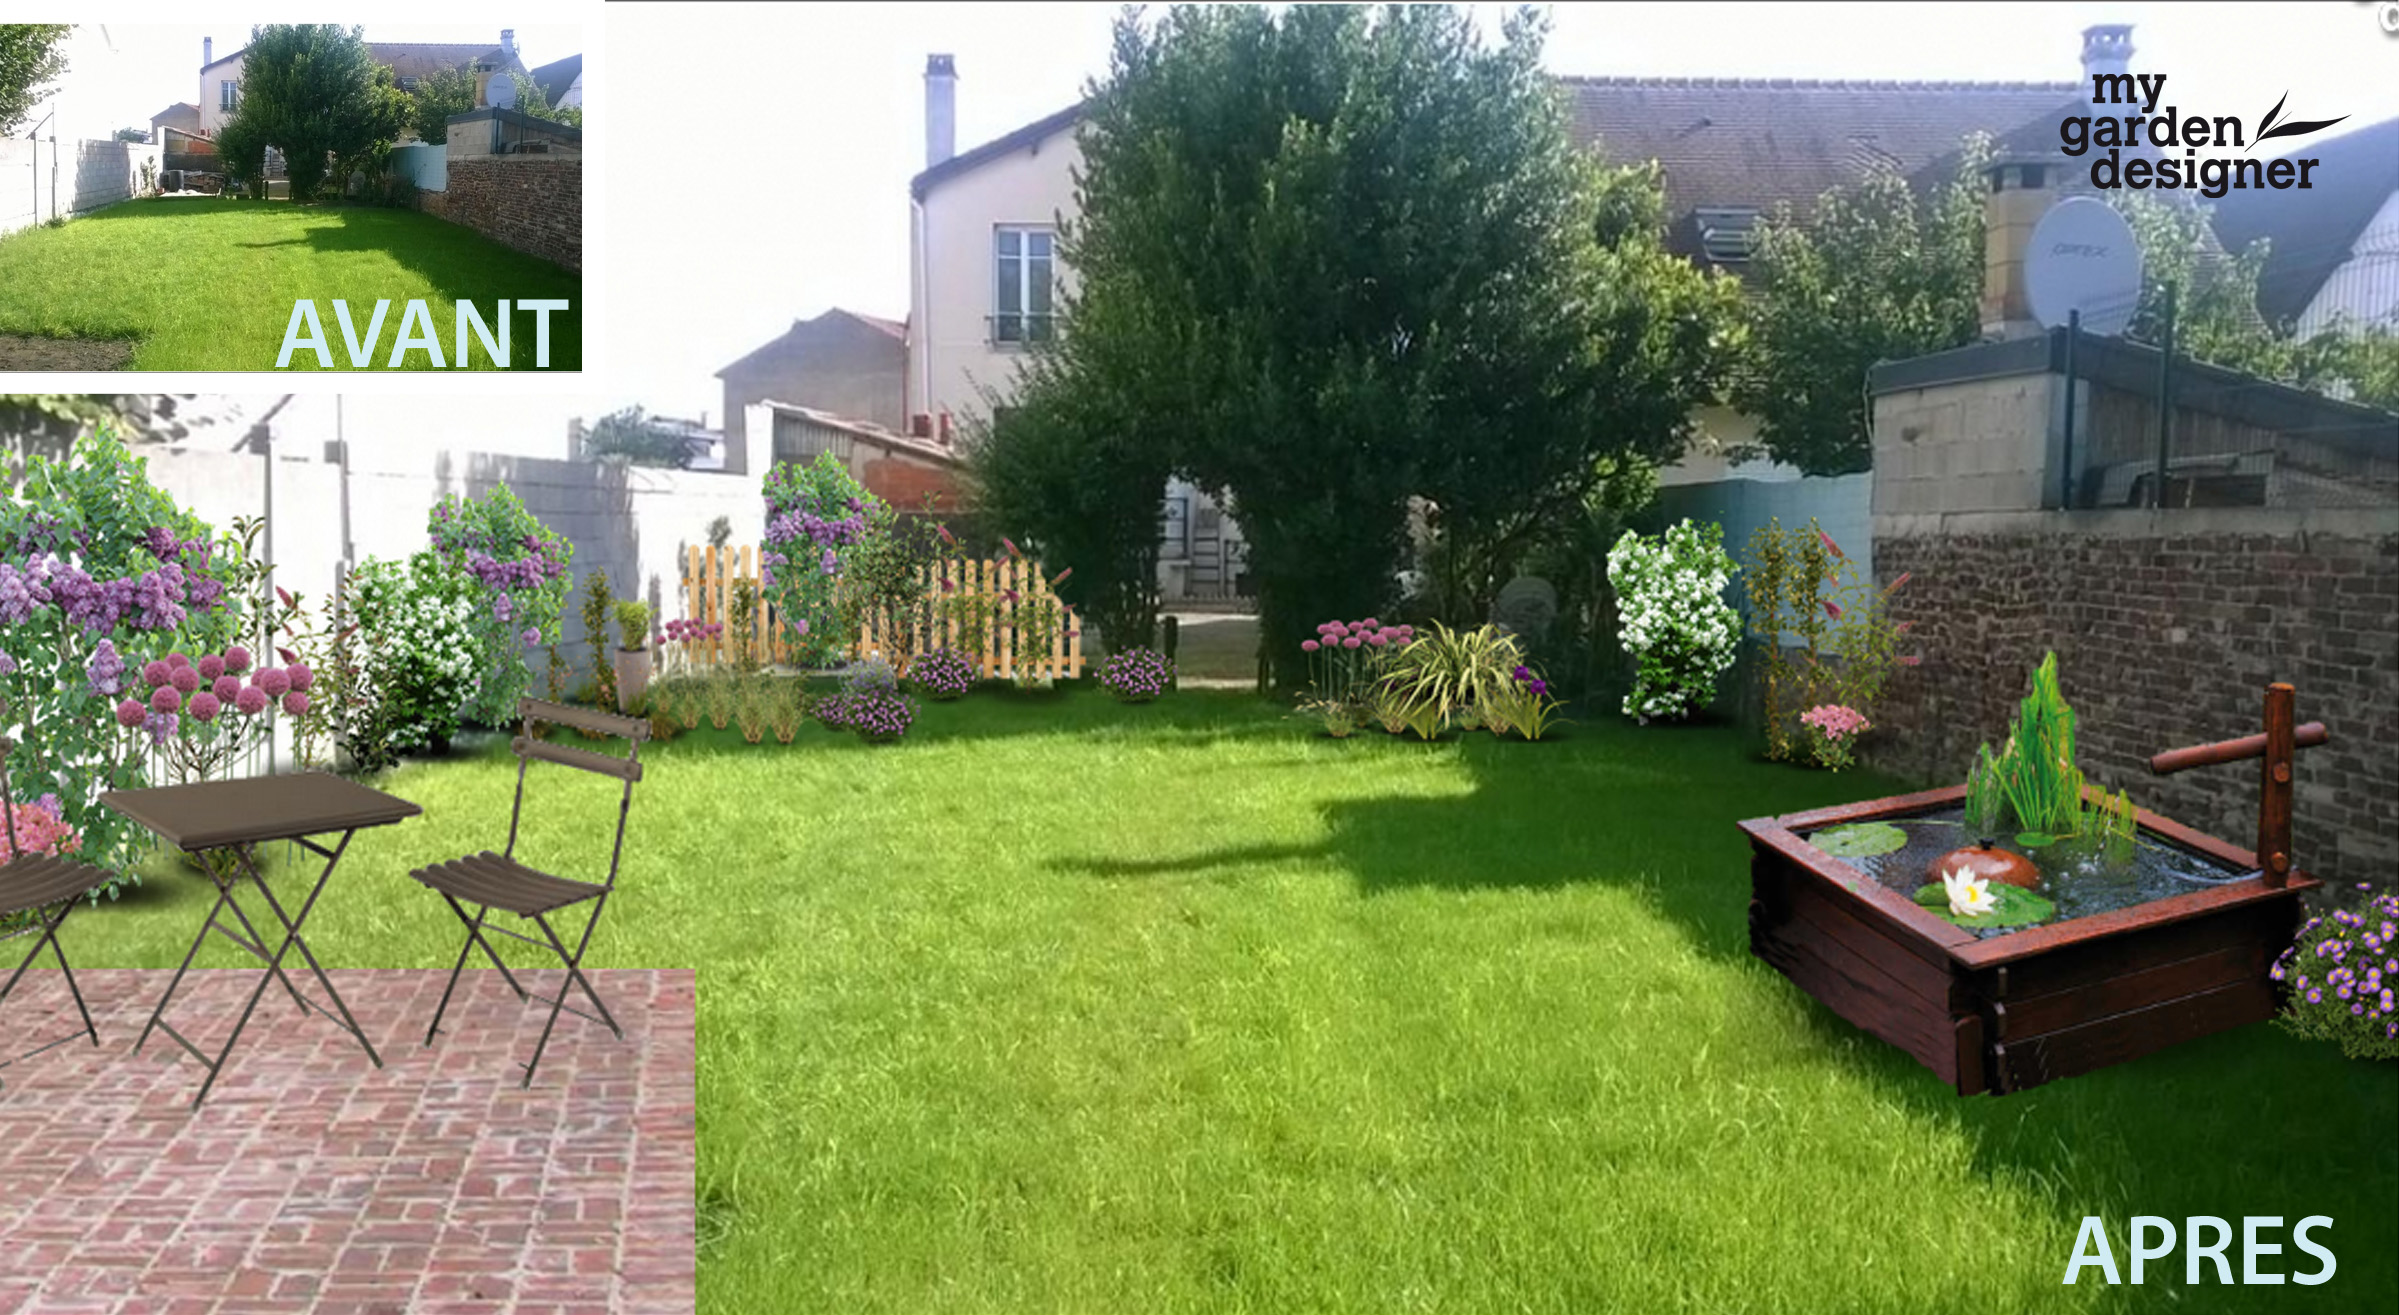 Am nager un jardin carr en ile de france monjardin for Carre de jardin